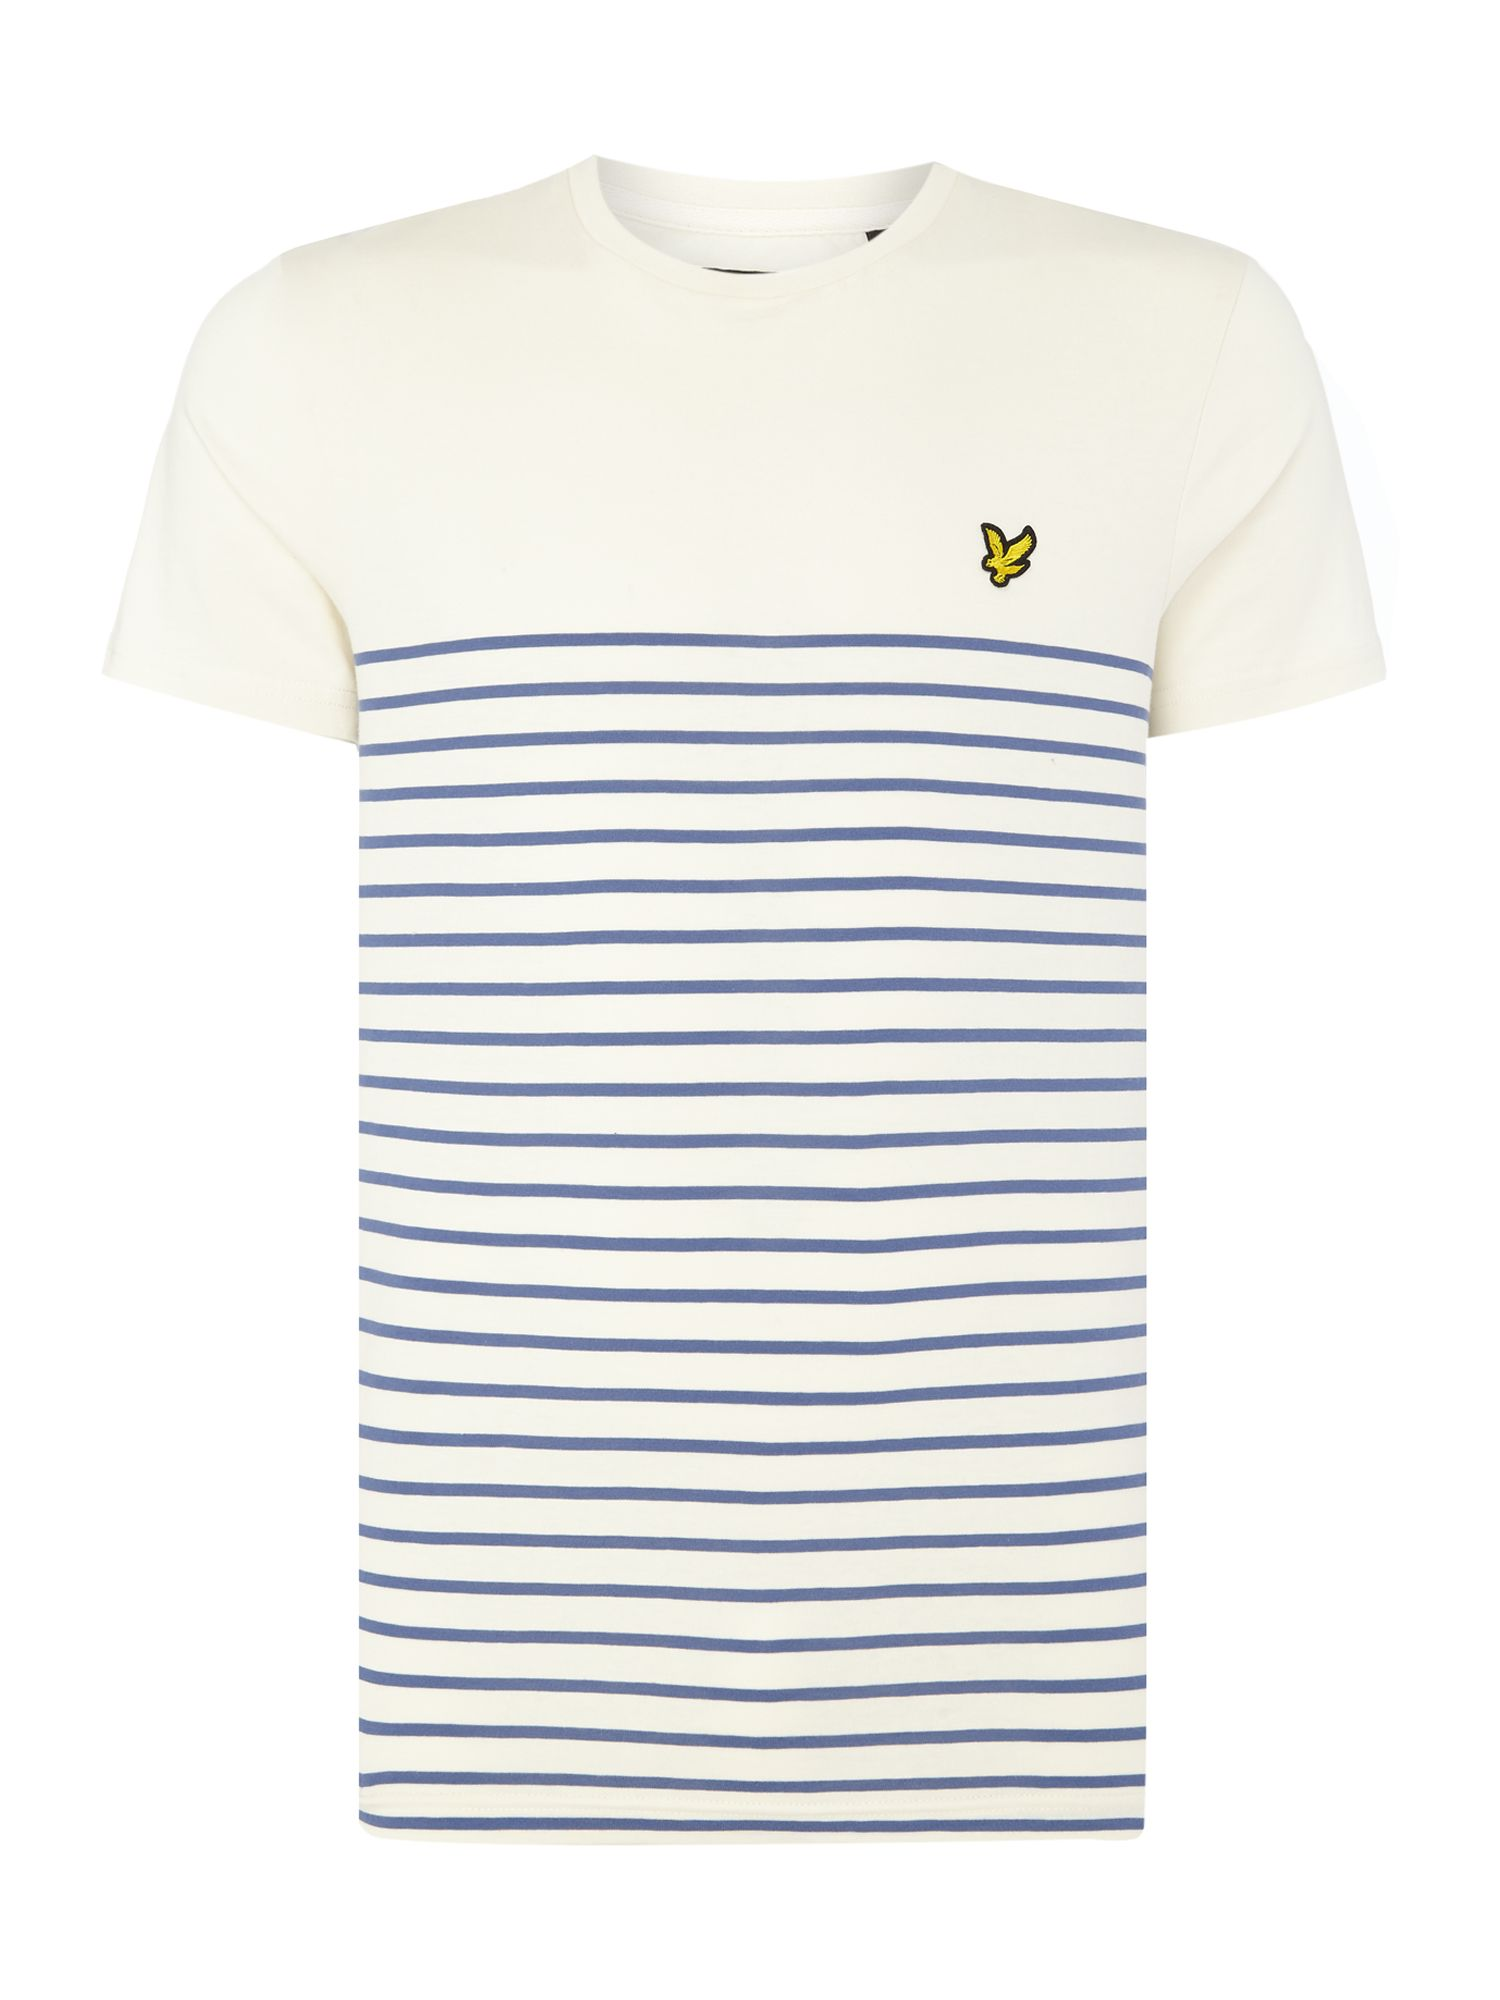 Men's Lyle and Scott Breton crew neck short sleeve t-shirt, Blue